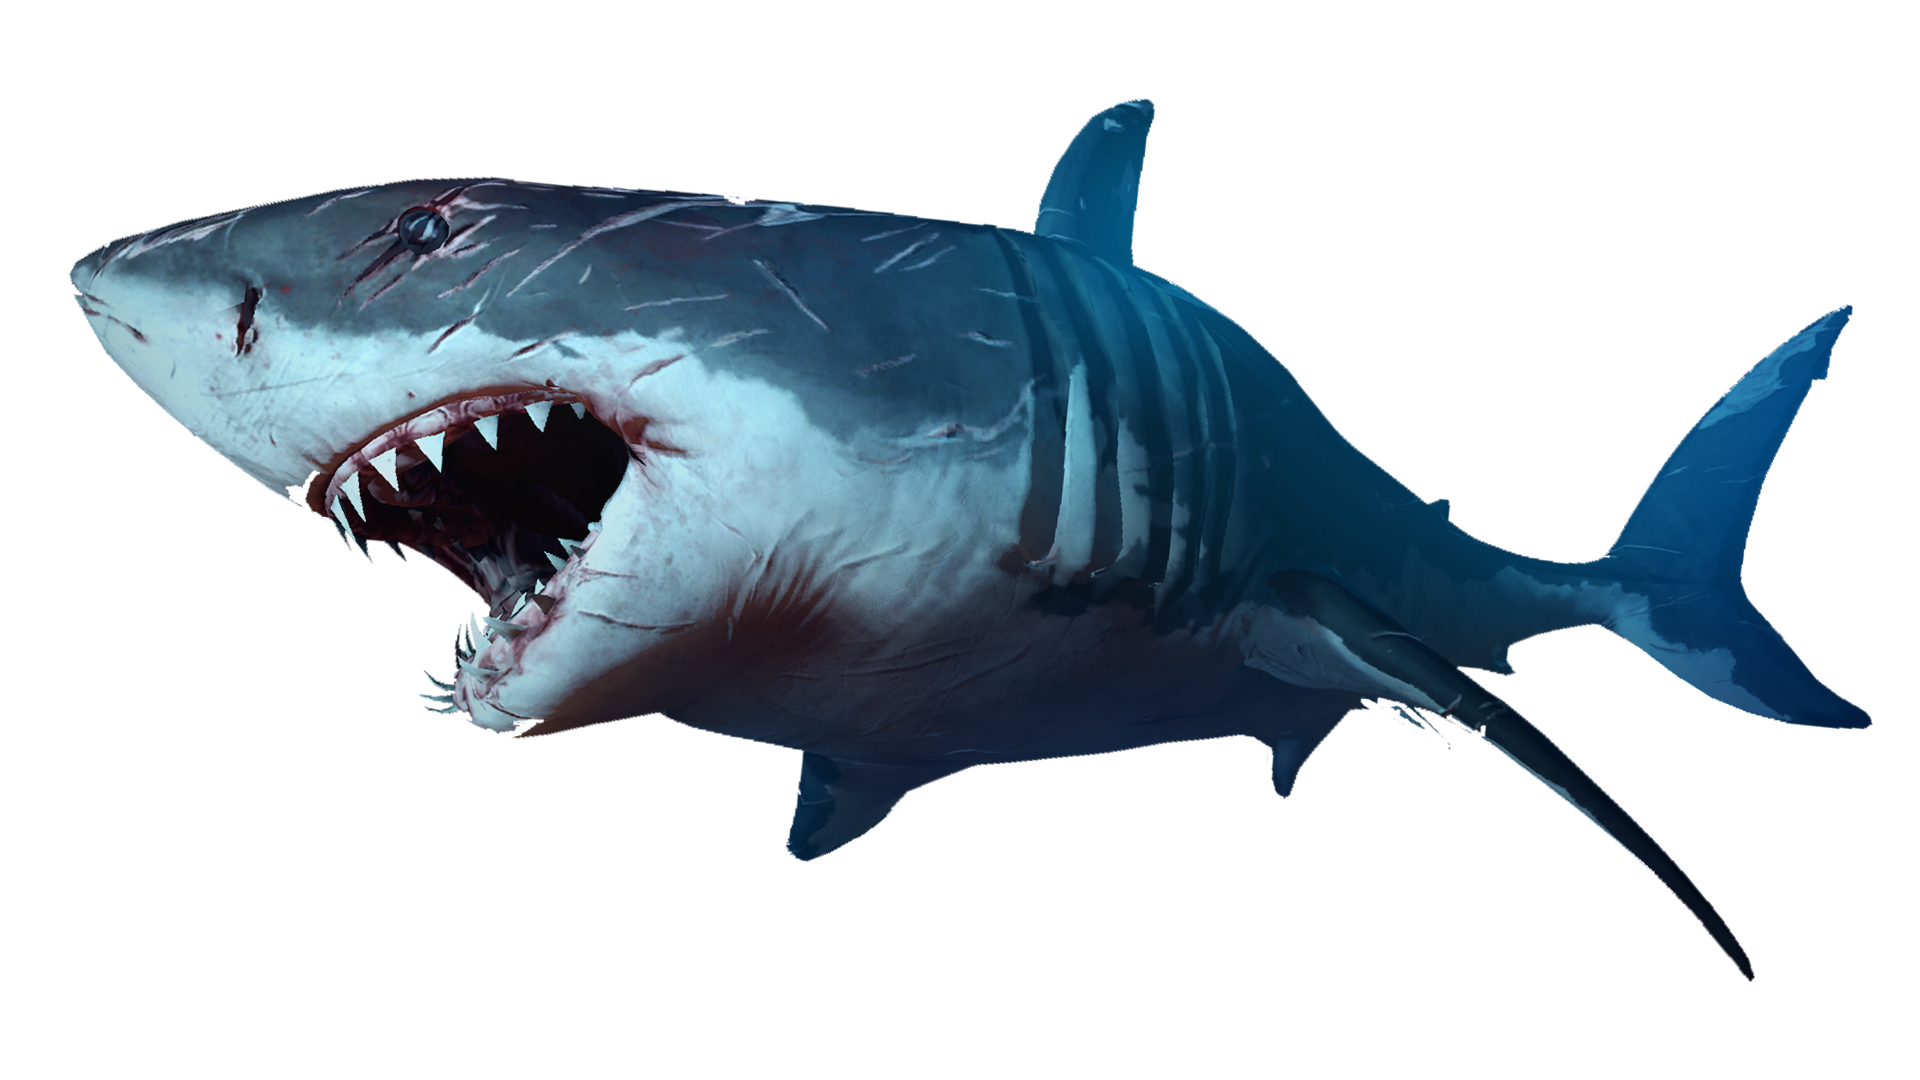 Shark mouth open png. Scary sharks image picpng